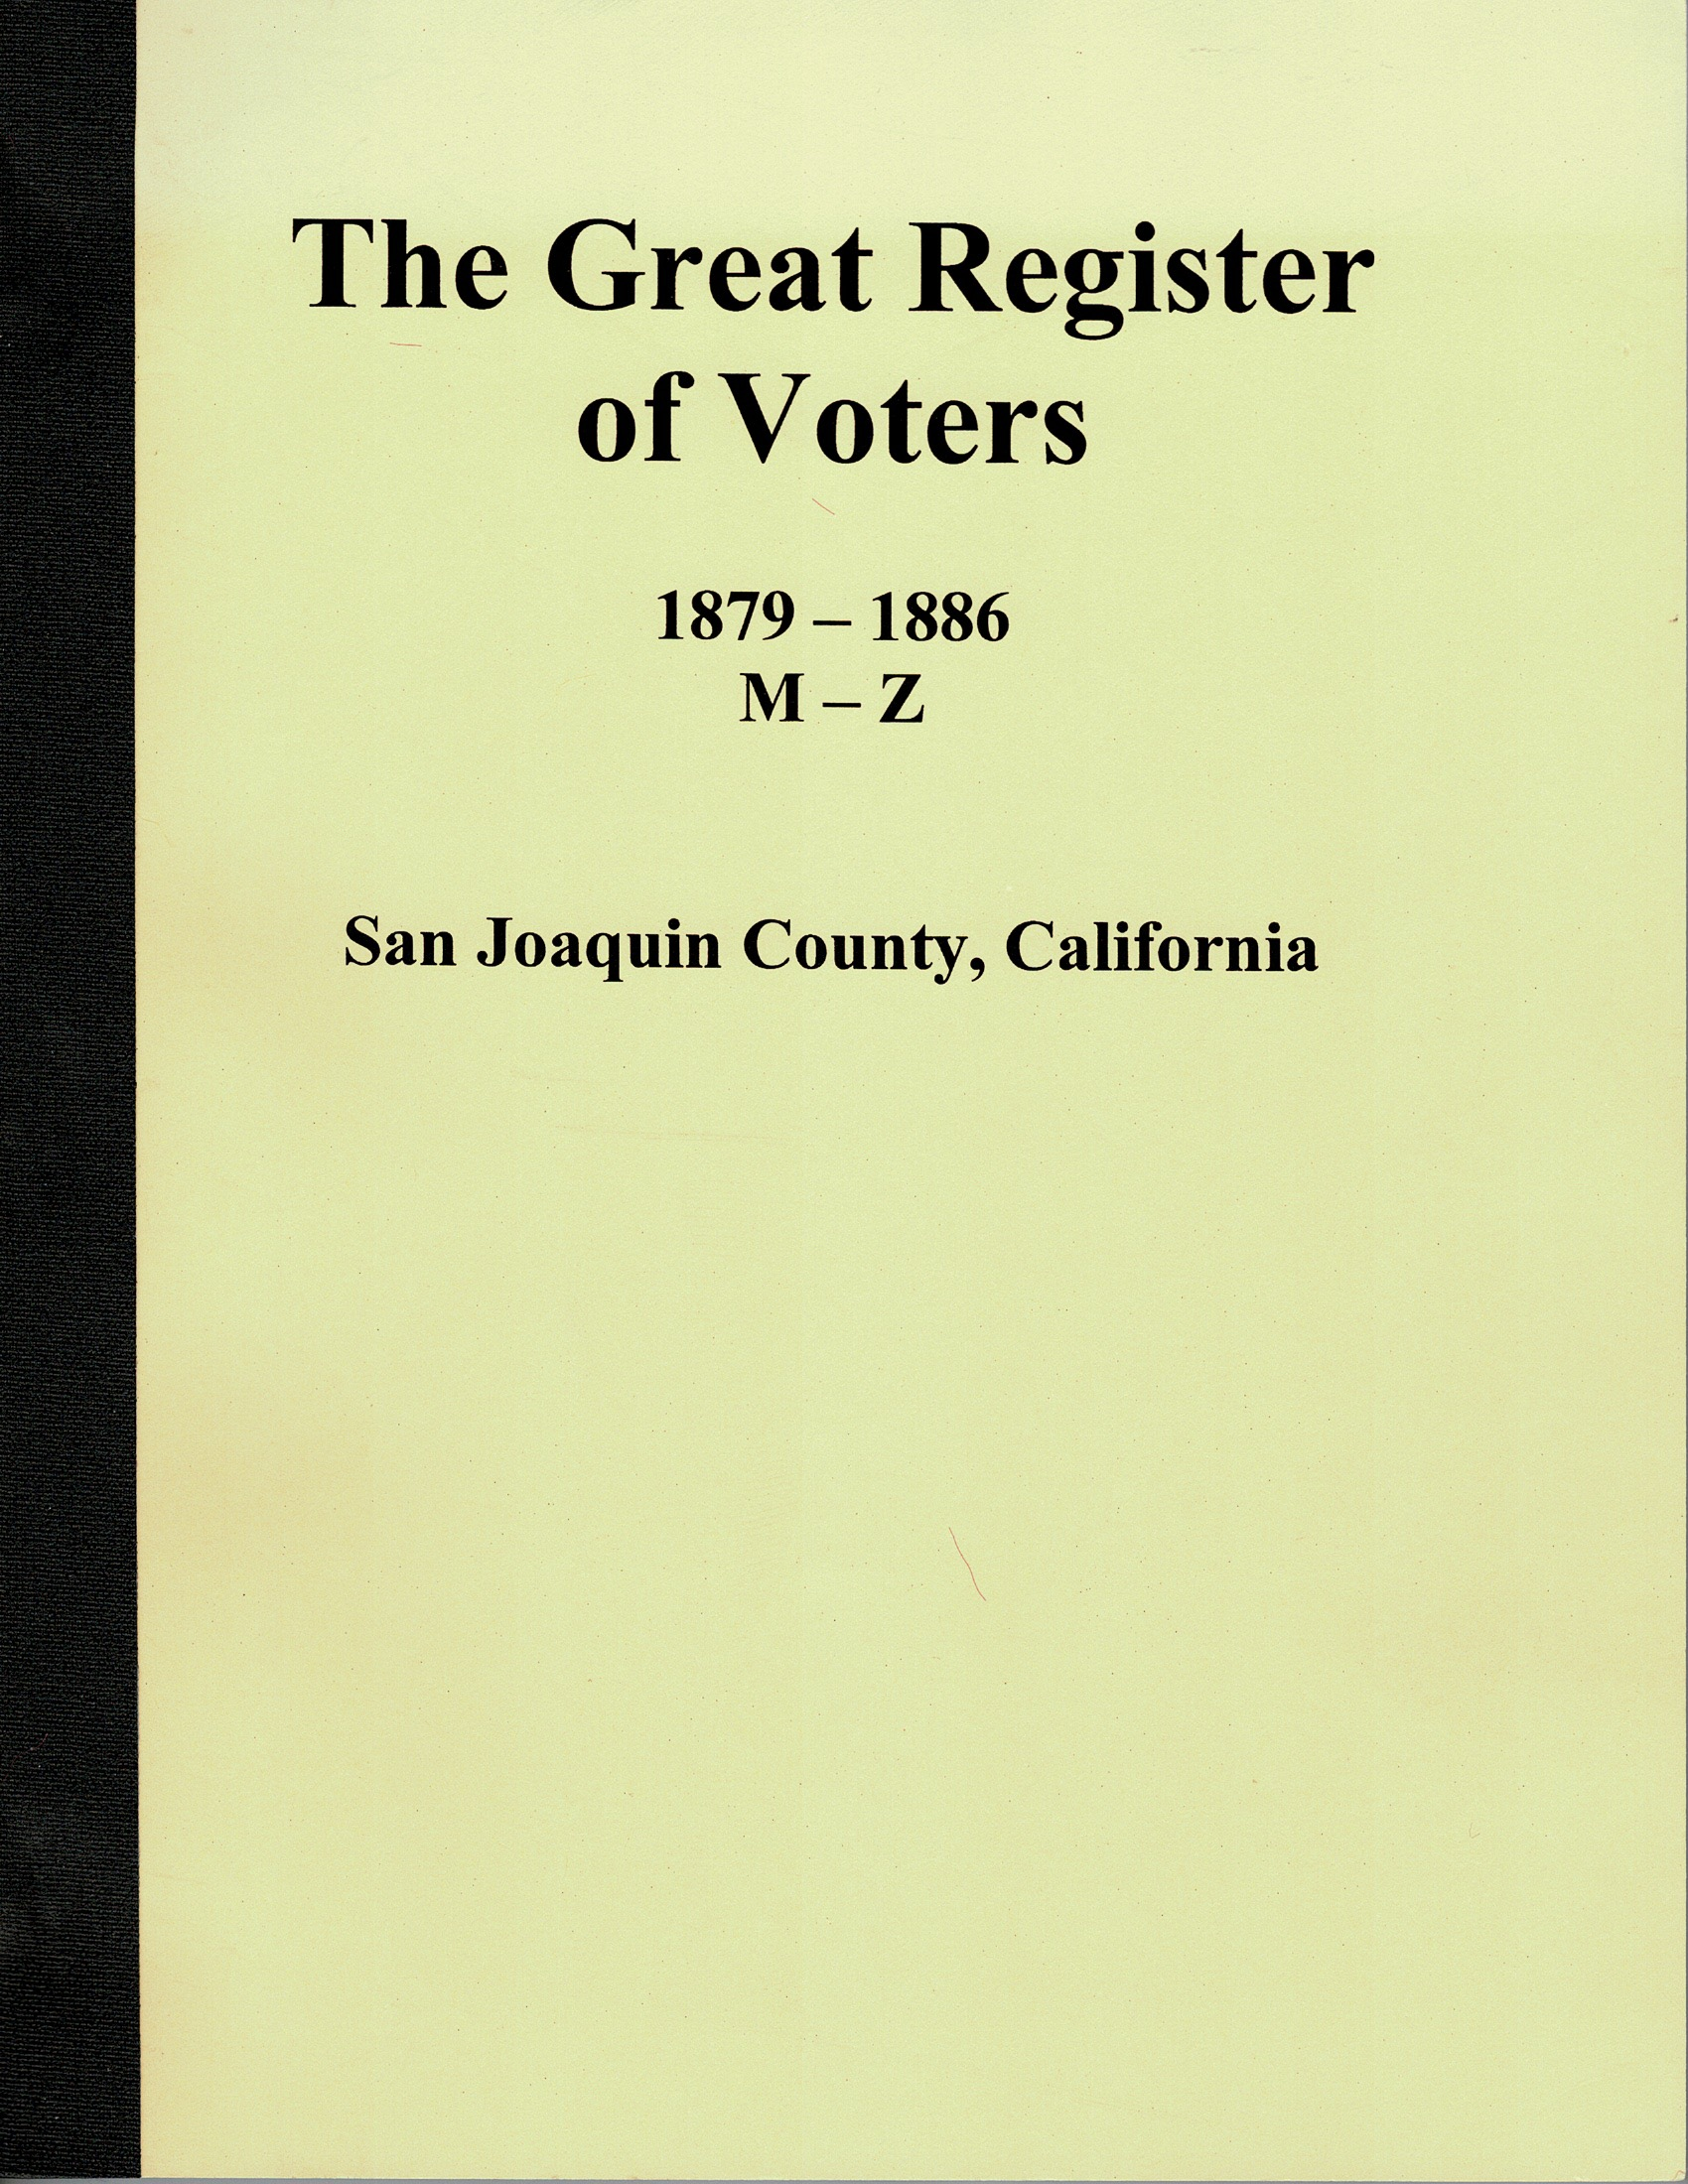 The Great Register of Voters, 1879 – 1886, M – Z, San Joaquin County, California